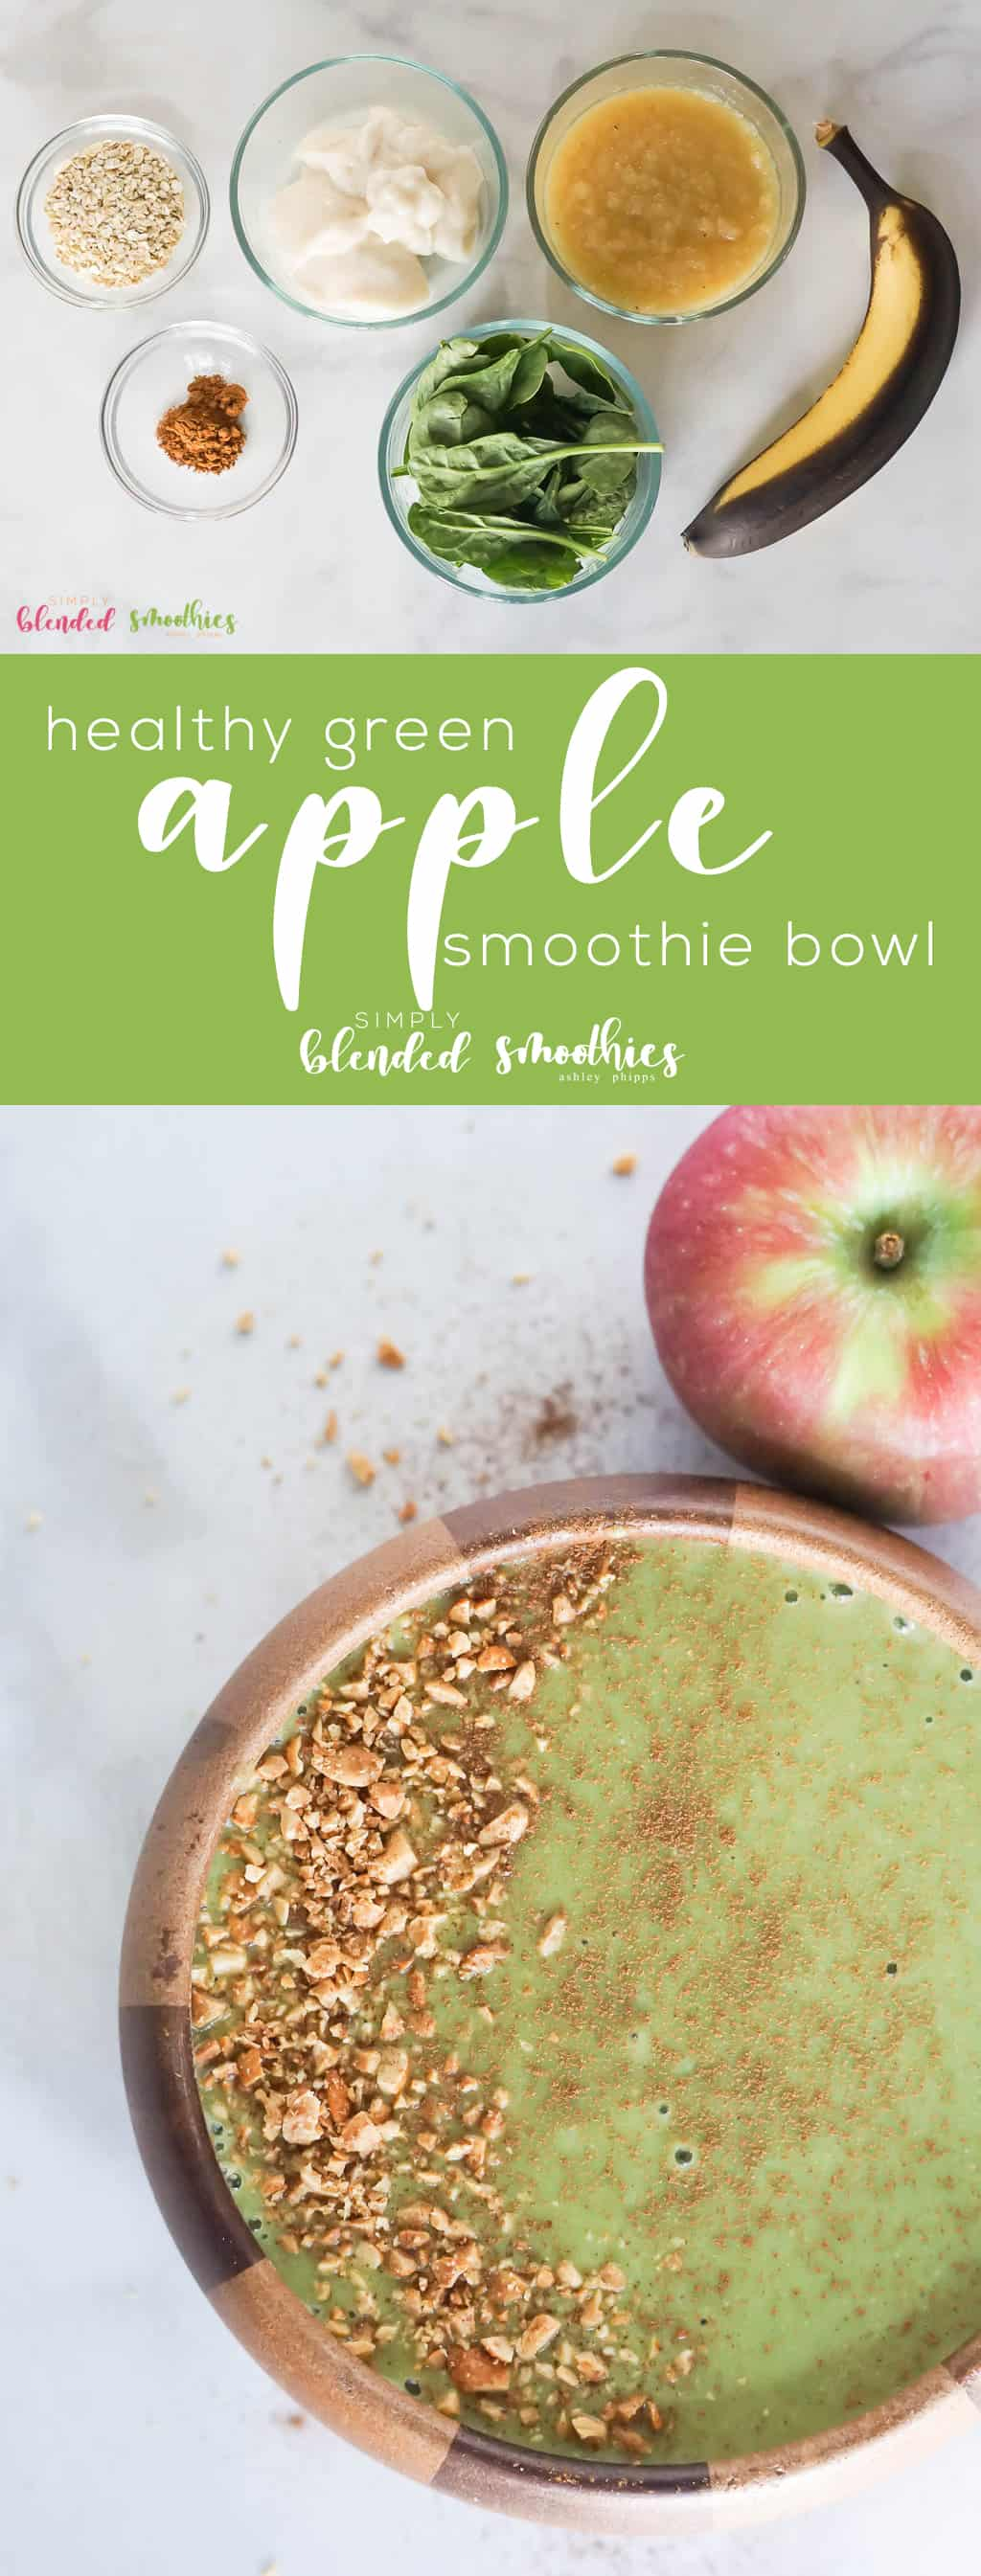 Green Apple Smoothie Bowl Recipe - this smoothie bowl recipe is filling and perfect for breakfast